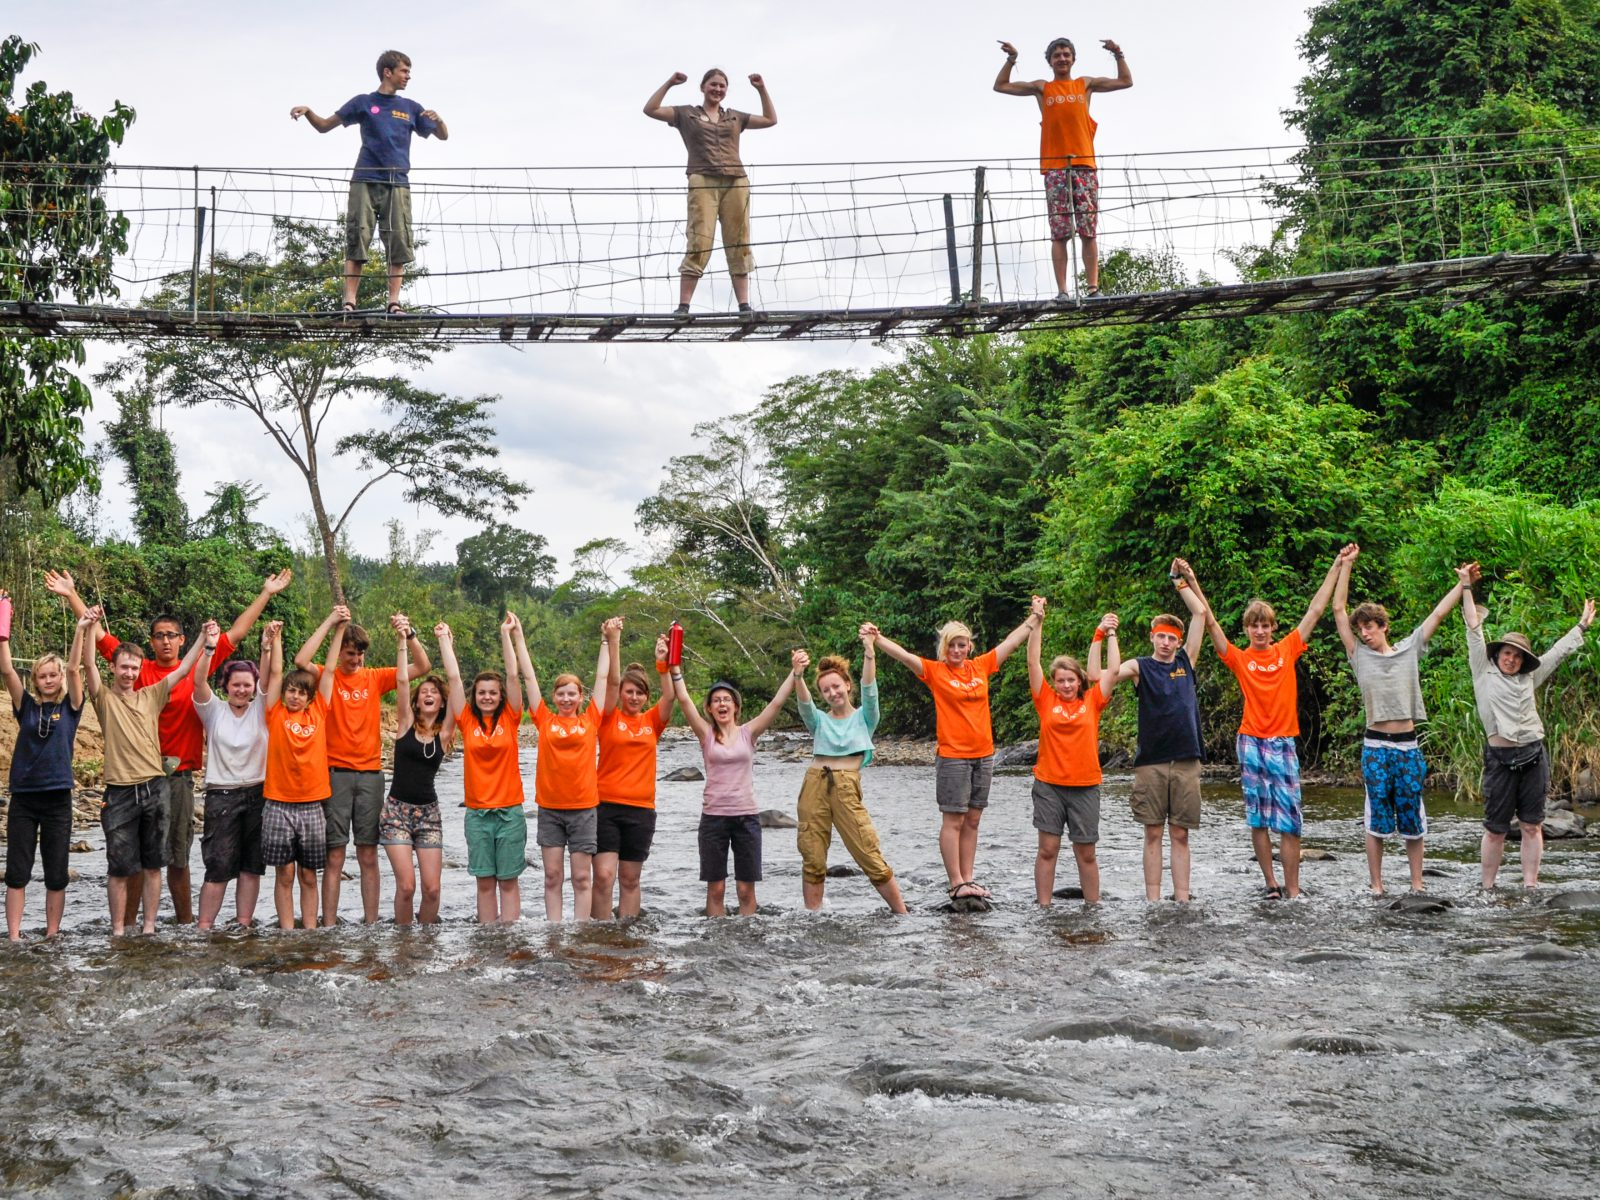 camps_international_social_enterprise_completed_project_in_borneo